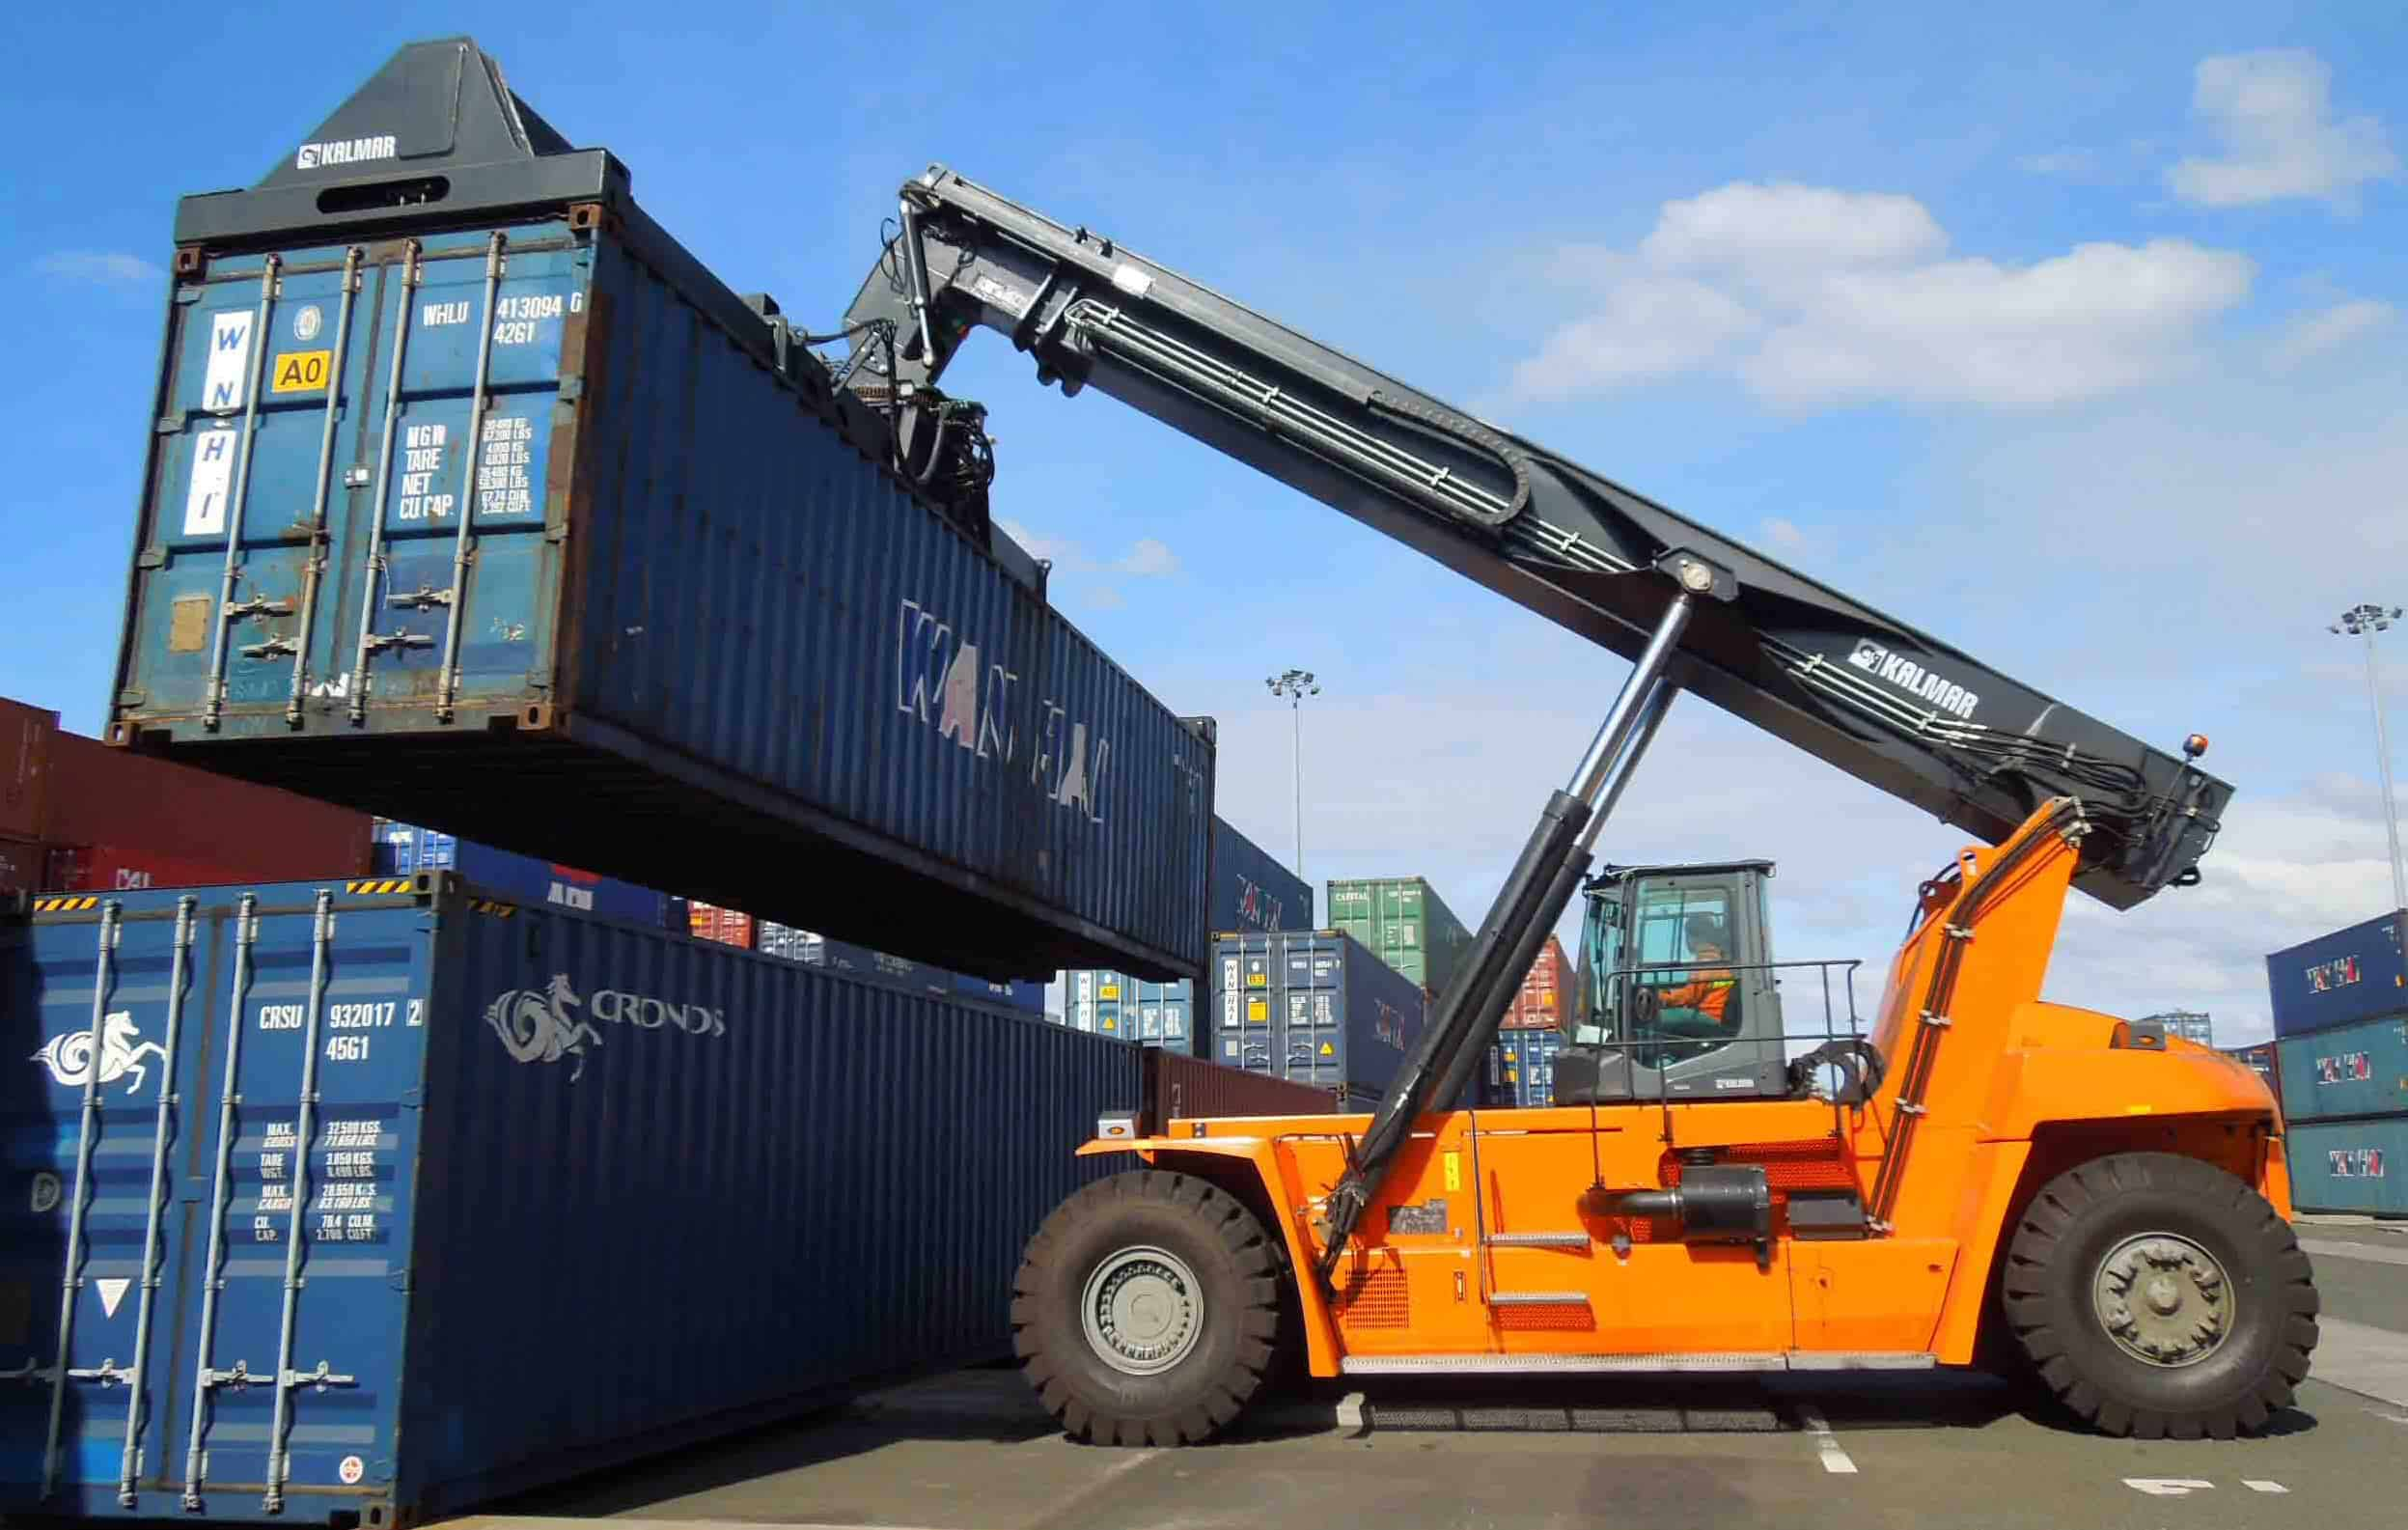 Four new Kalmar reachstackers at ICTSI's Philippine terminals